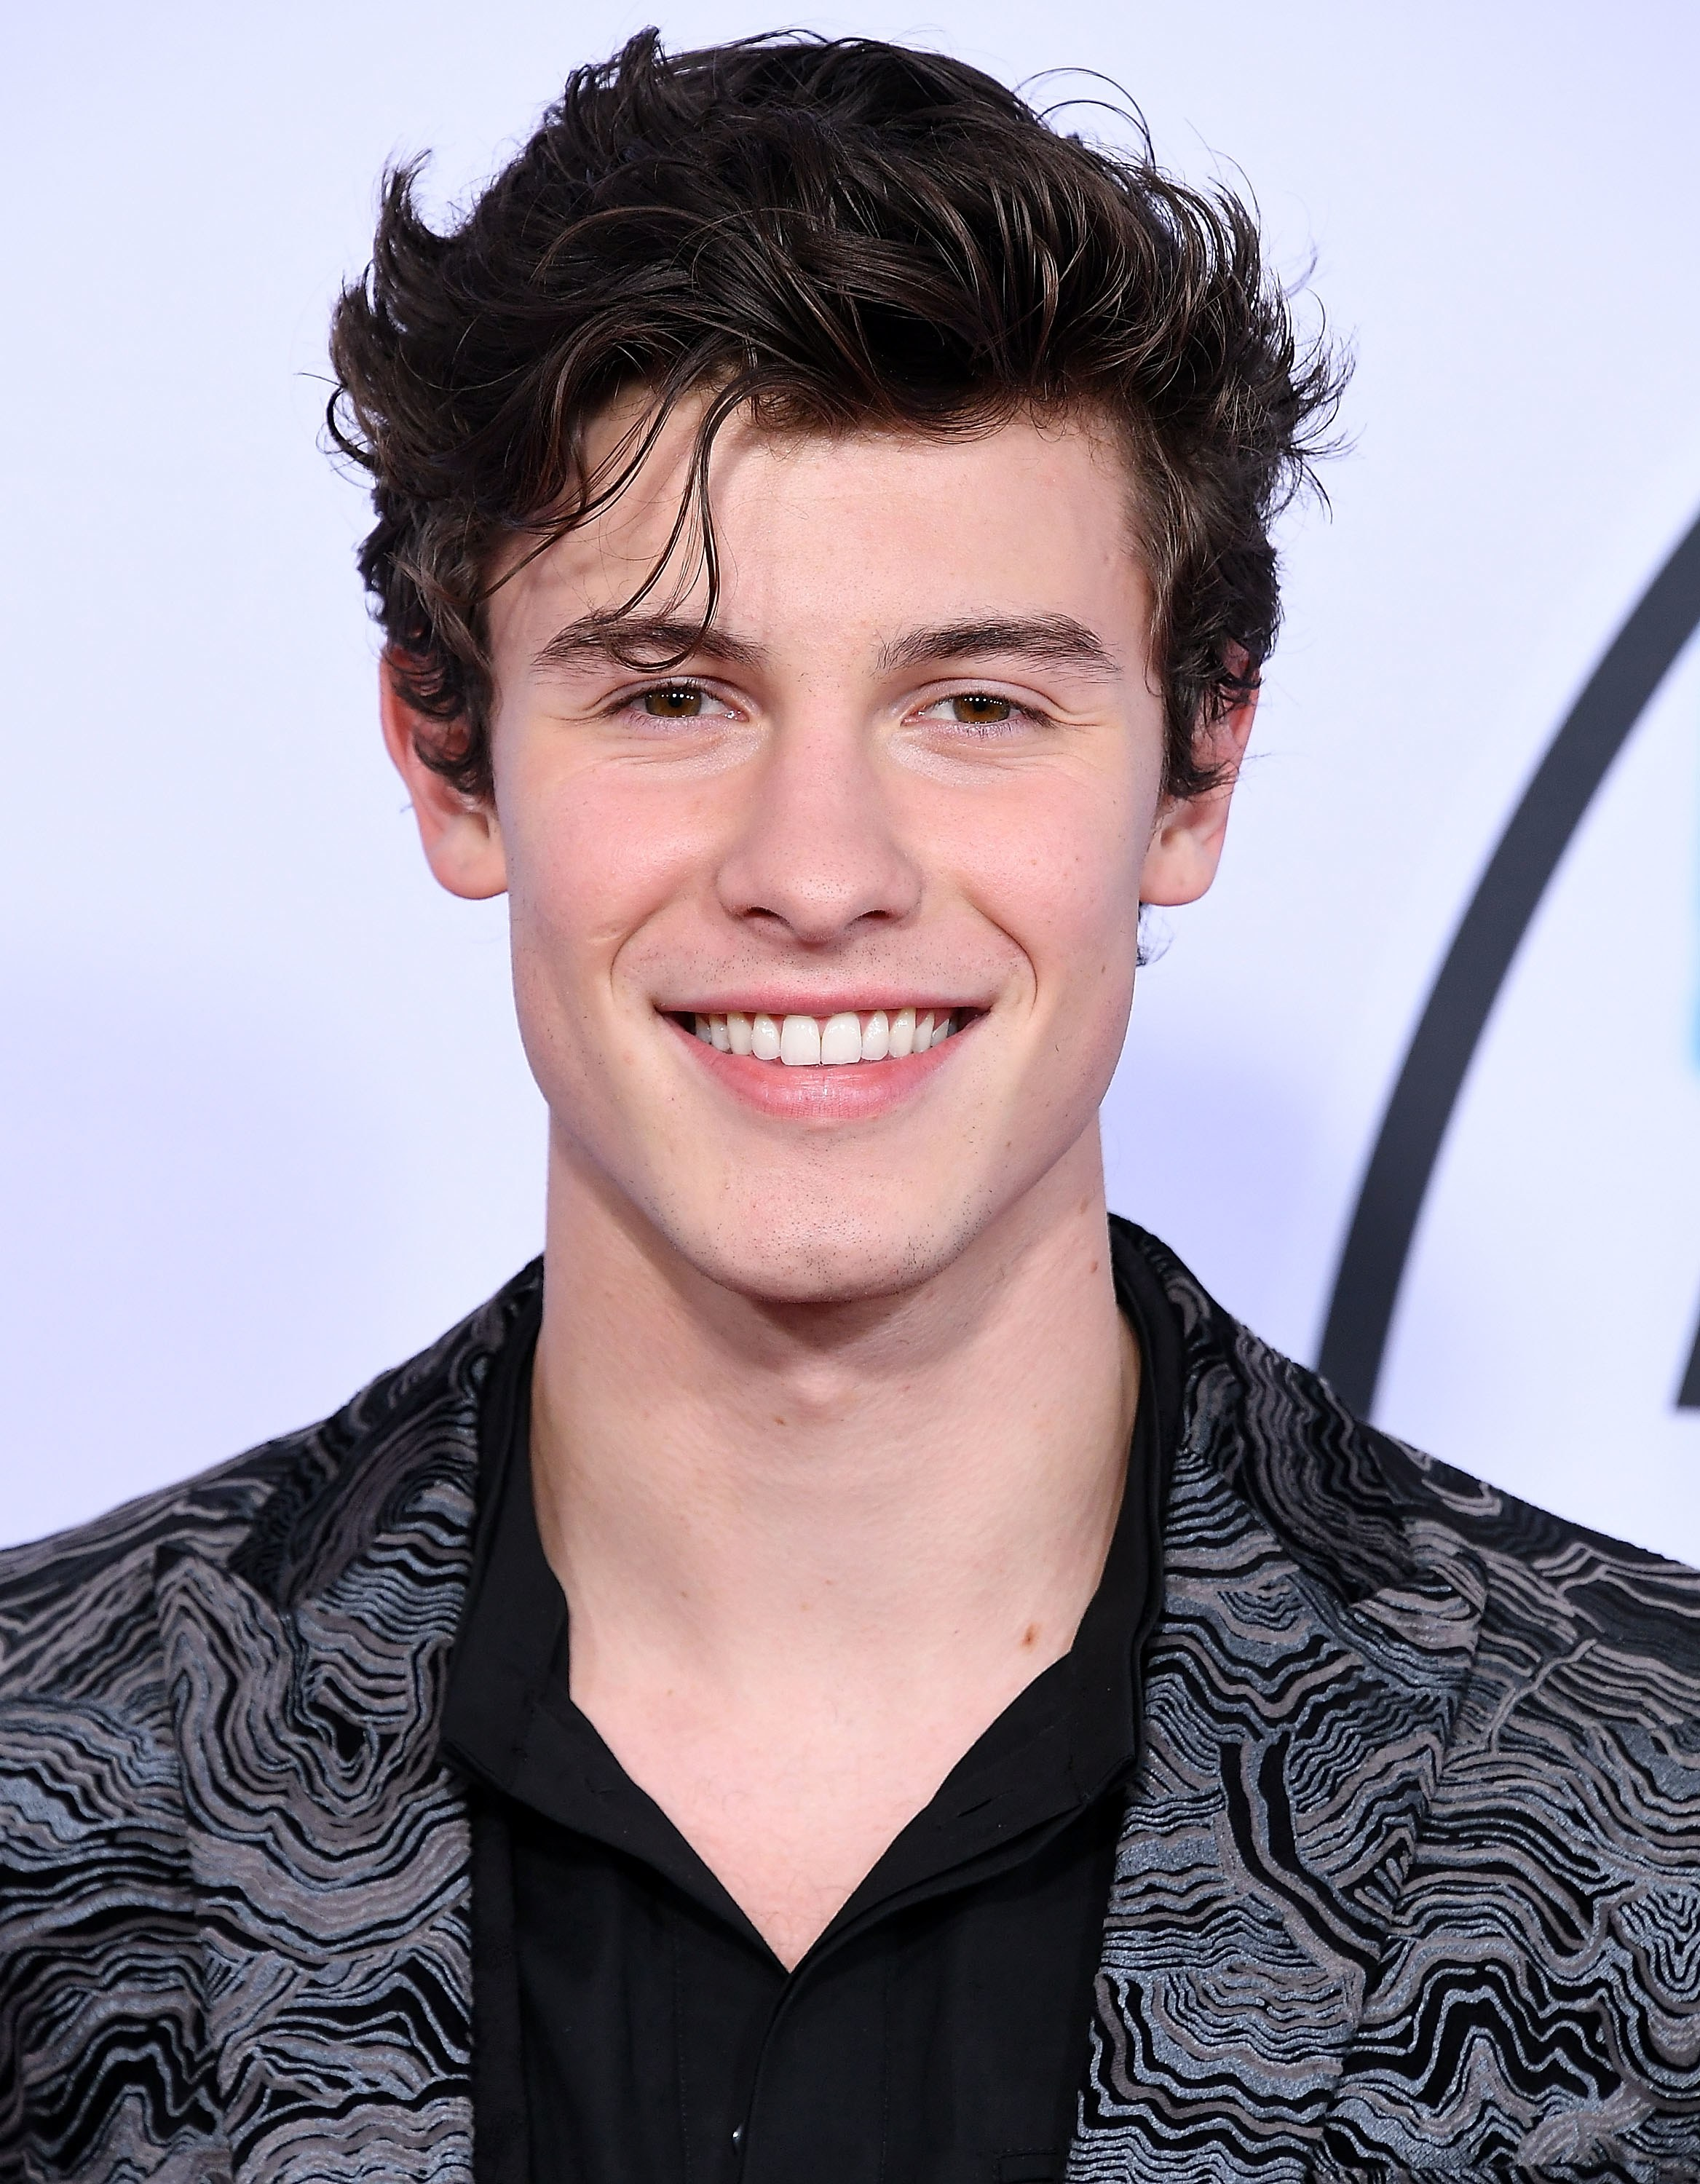 Shawn Mendes Wins Big At 2018 iHeartRadio MMVAs - The Hollywood Digest